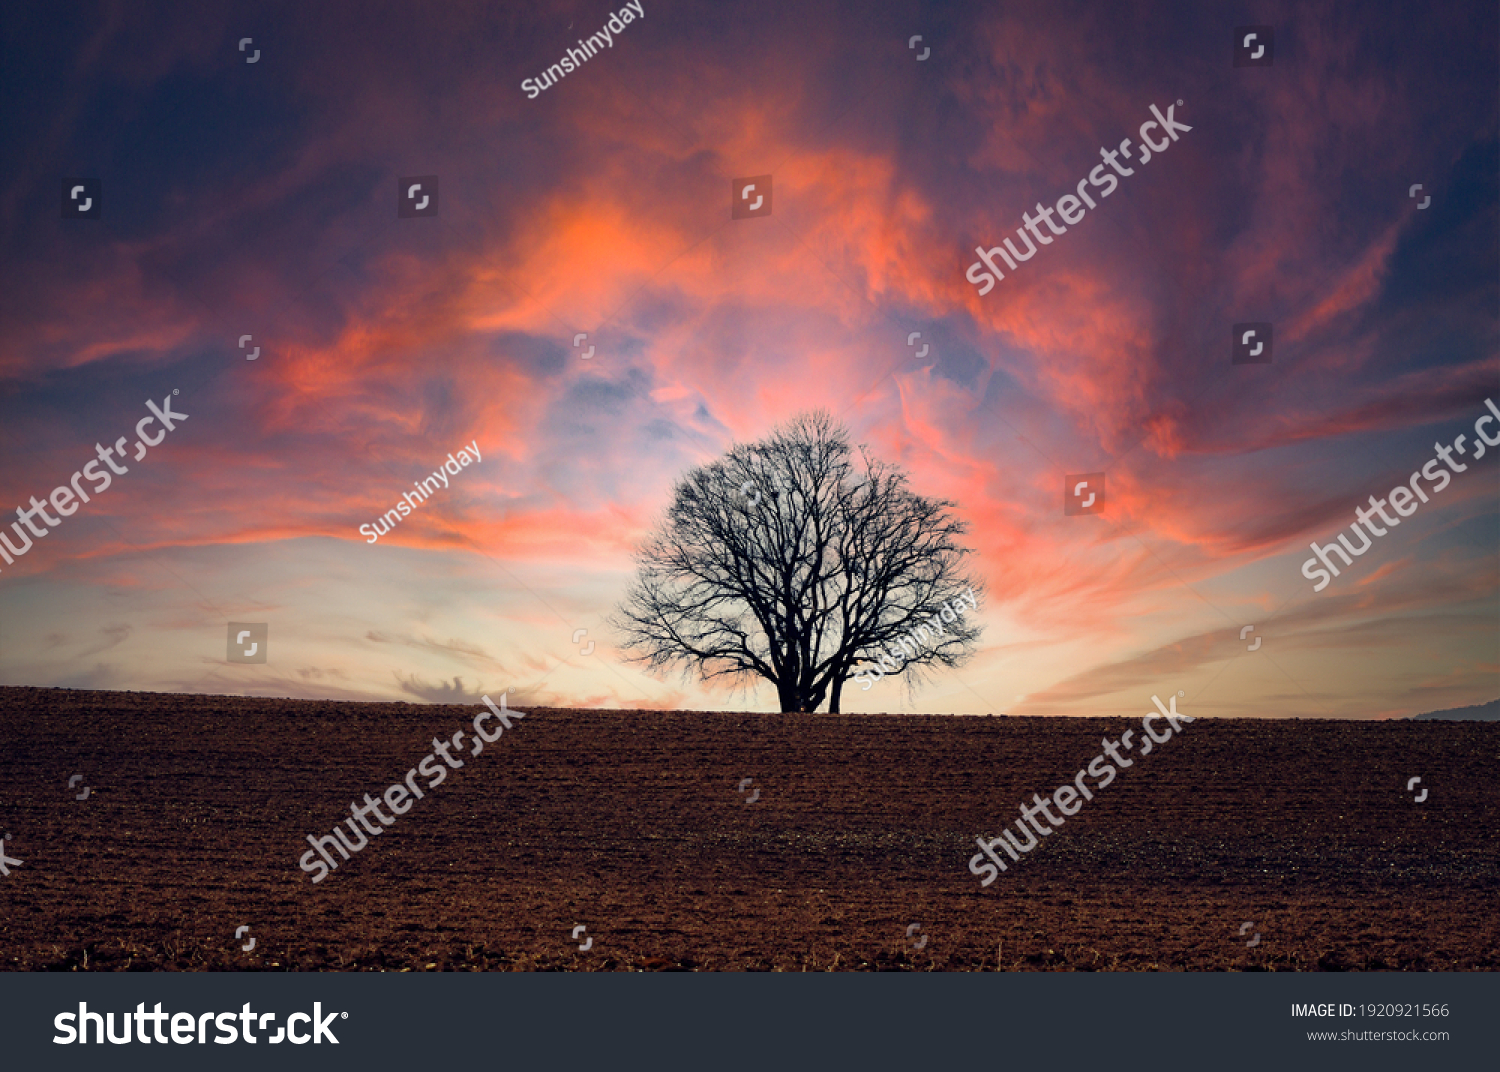 Single tree in front of a dramatic illuminated sky